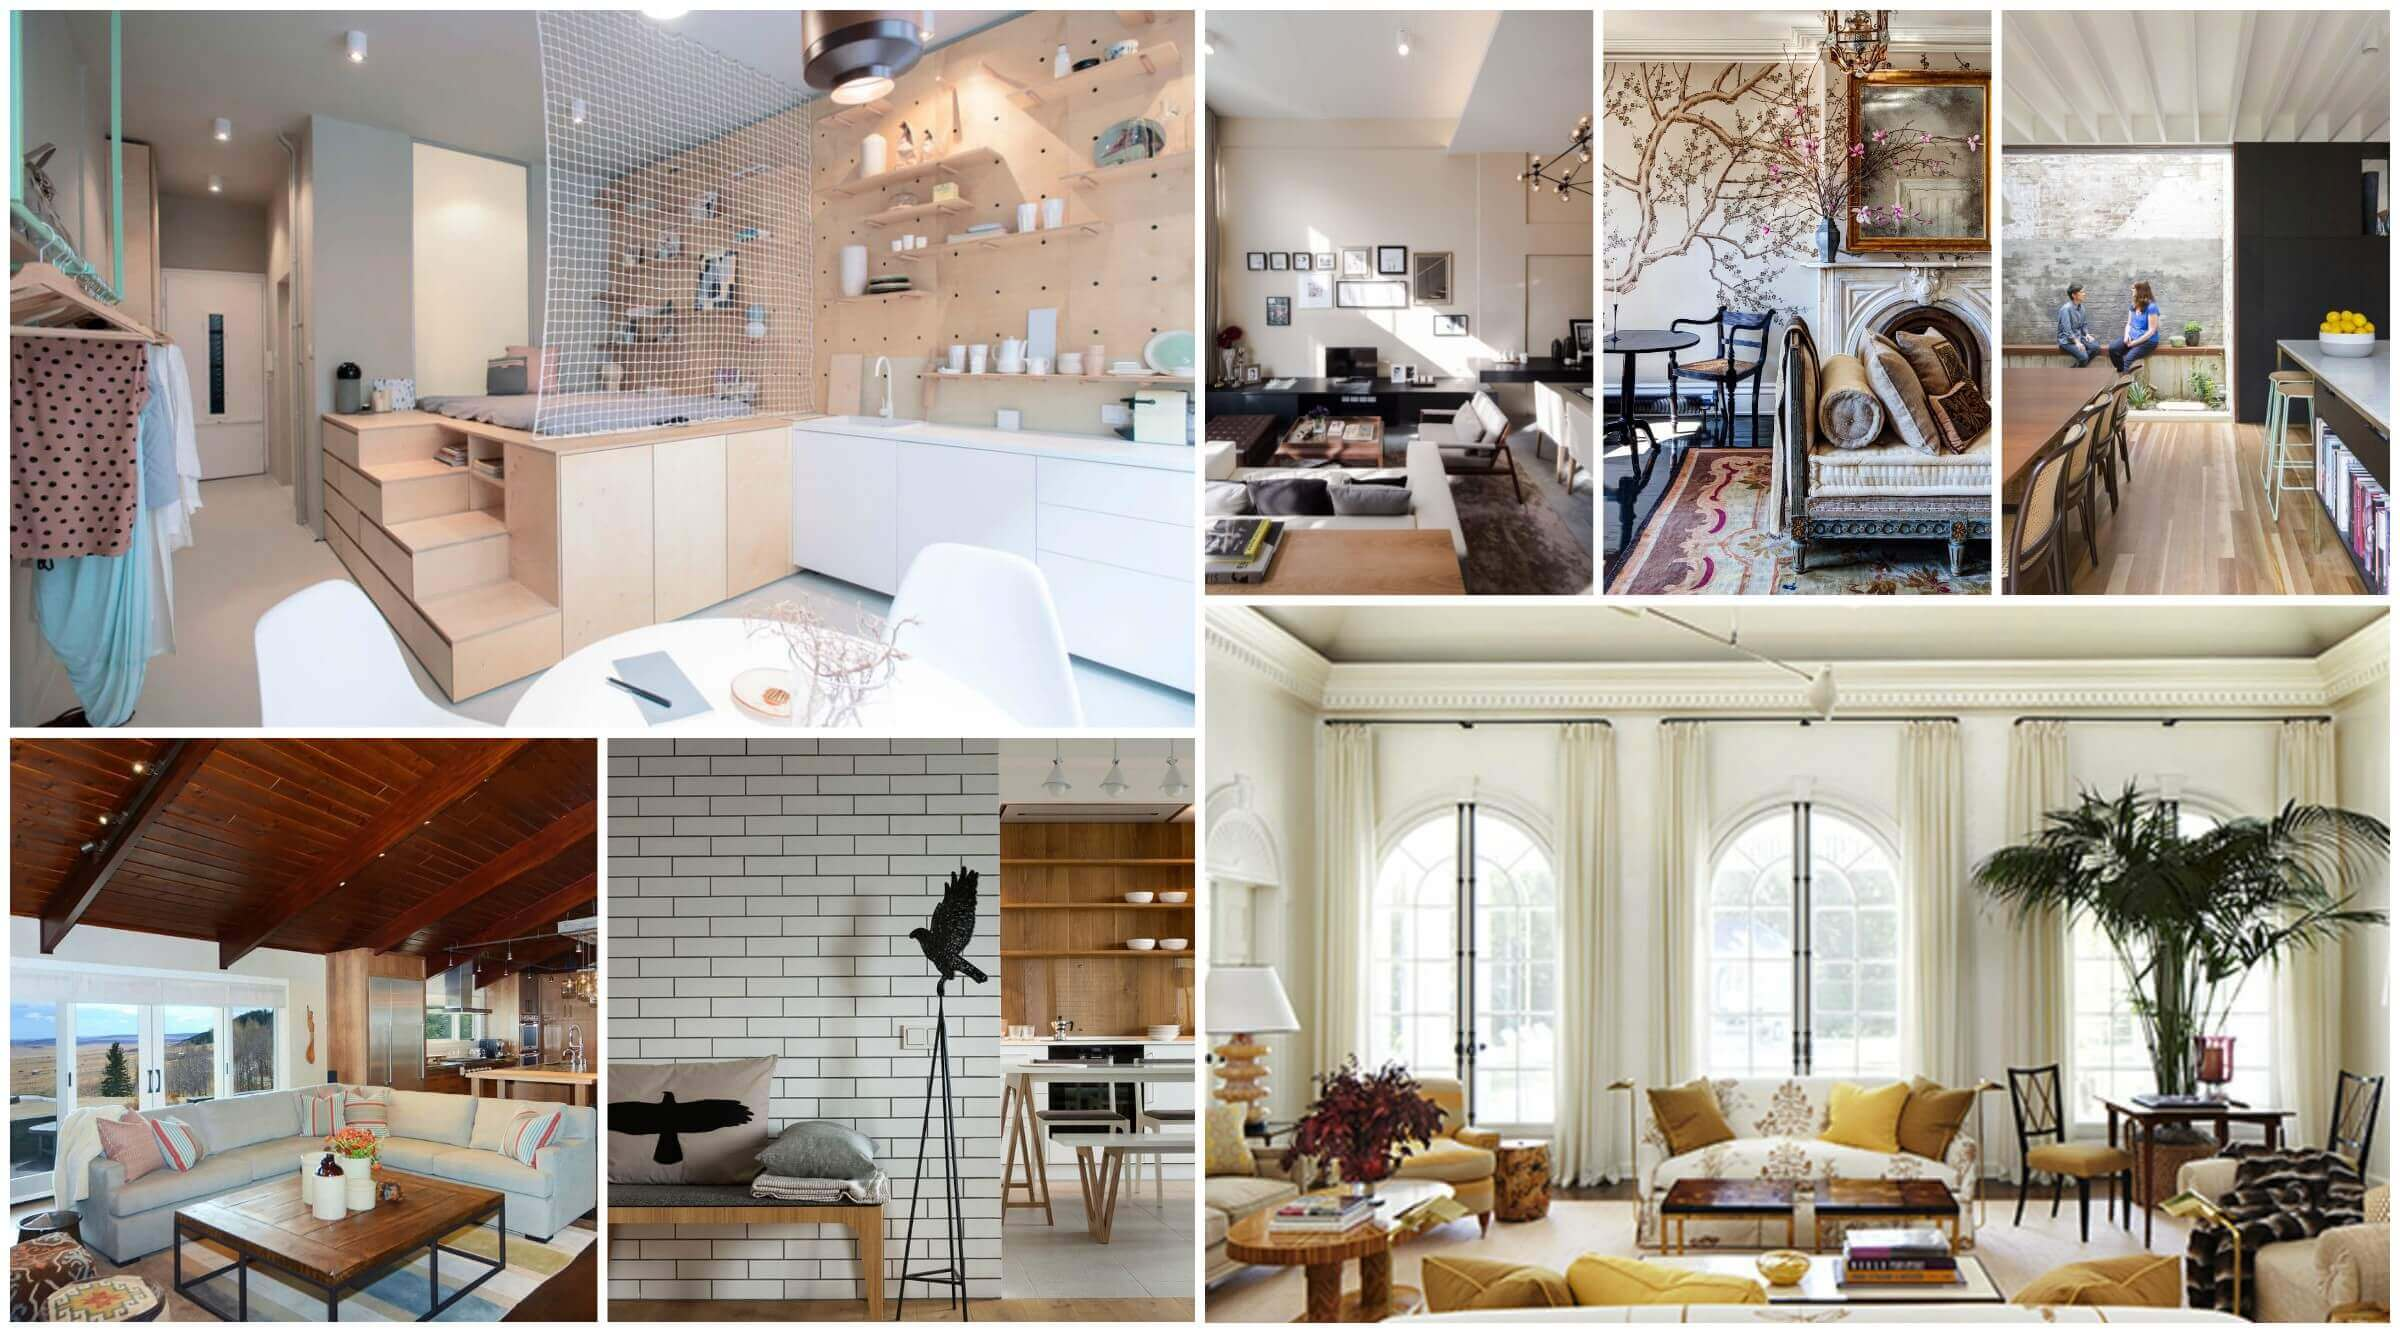 7+ Townhouse Interior Design Ideas For A Modern Townhouse